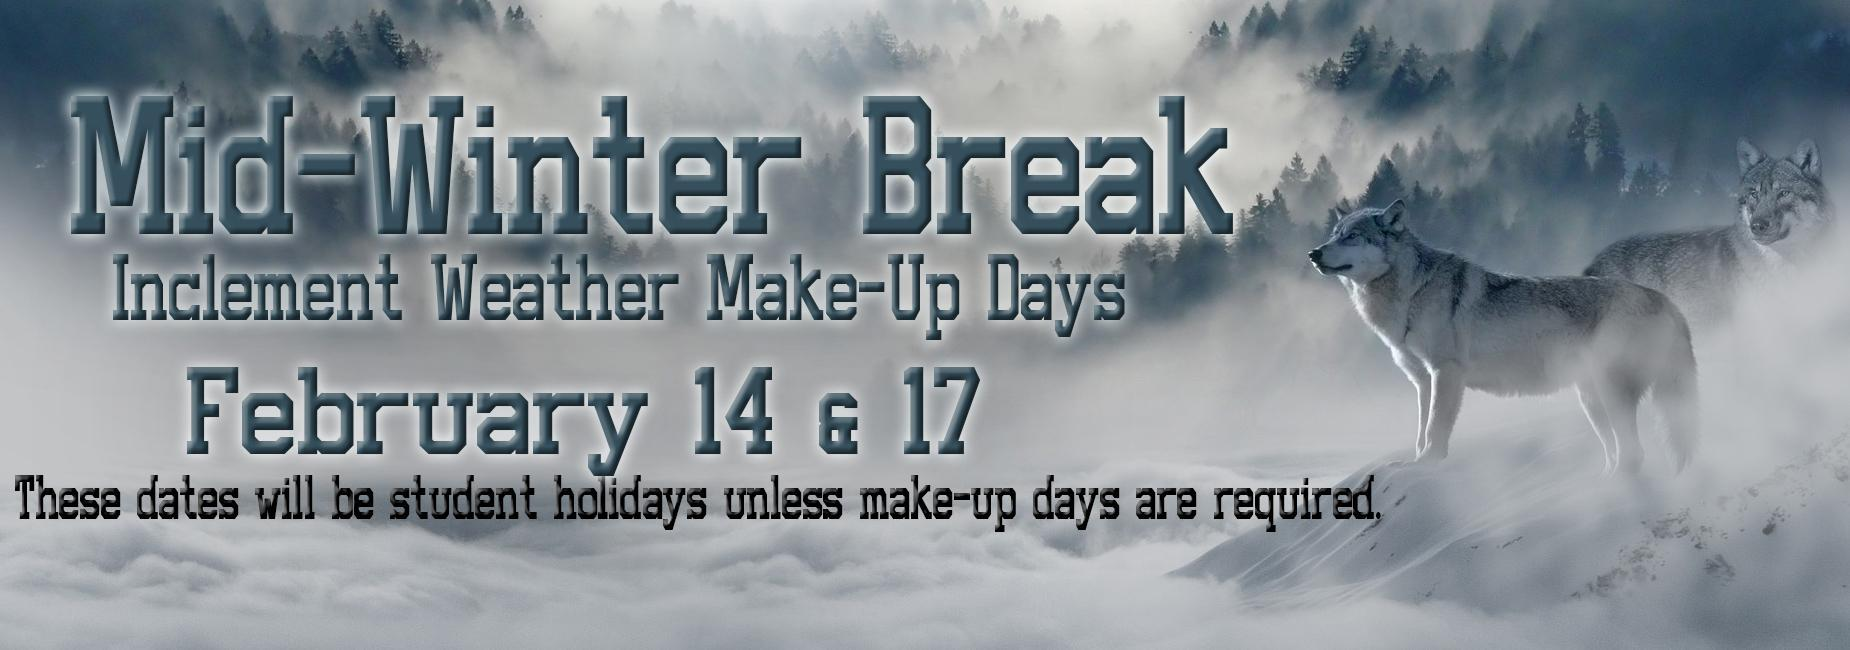 Inclement Weather Days February 14 & 17